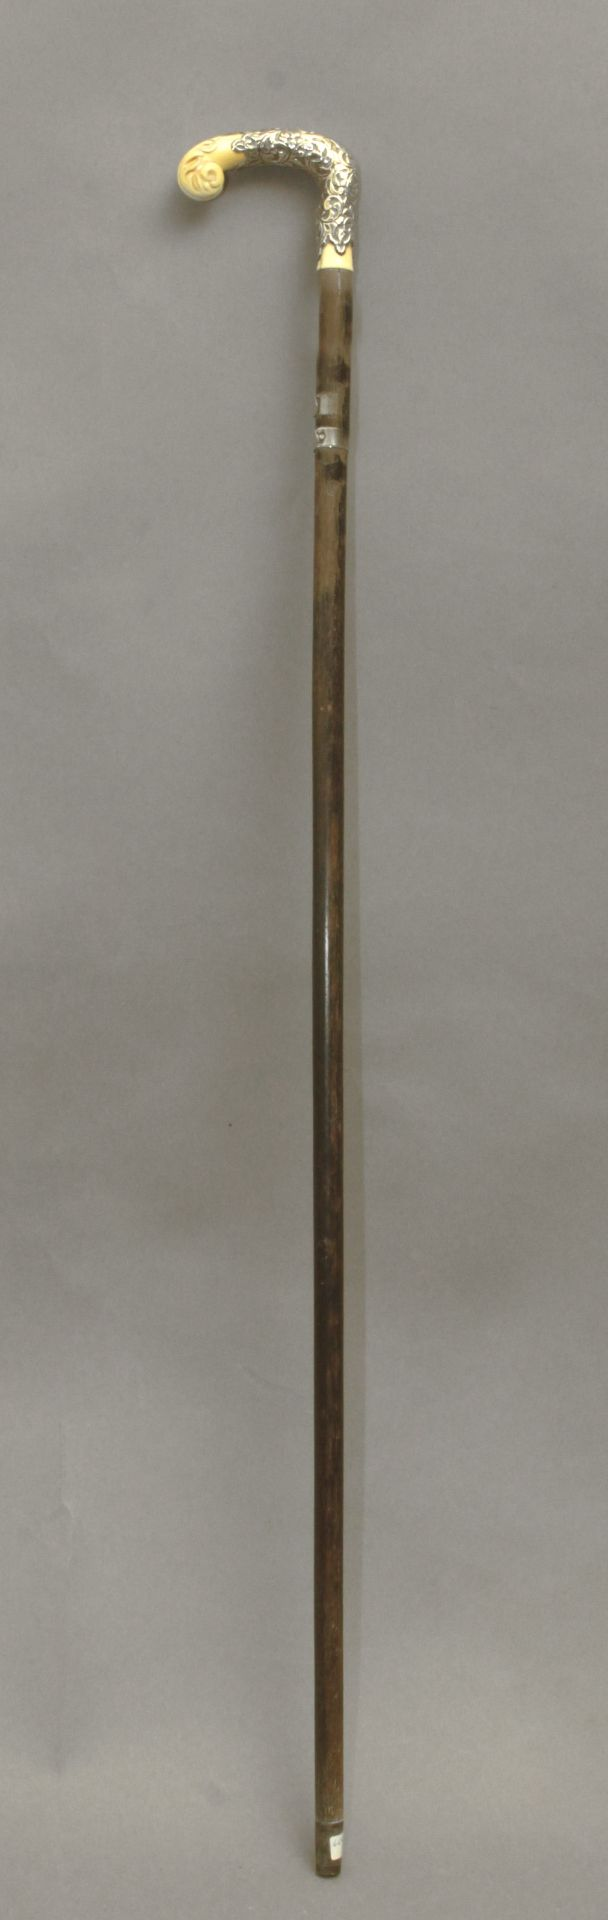 An ivory handled dress cane circa 1900 - Bild 3 aus 8